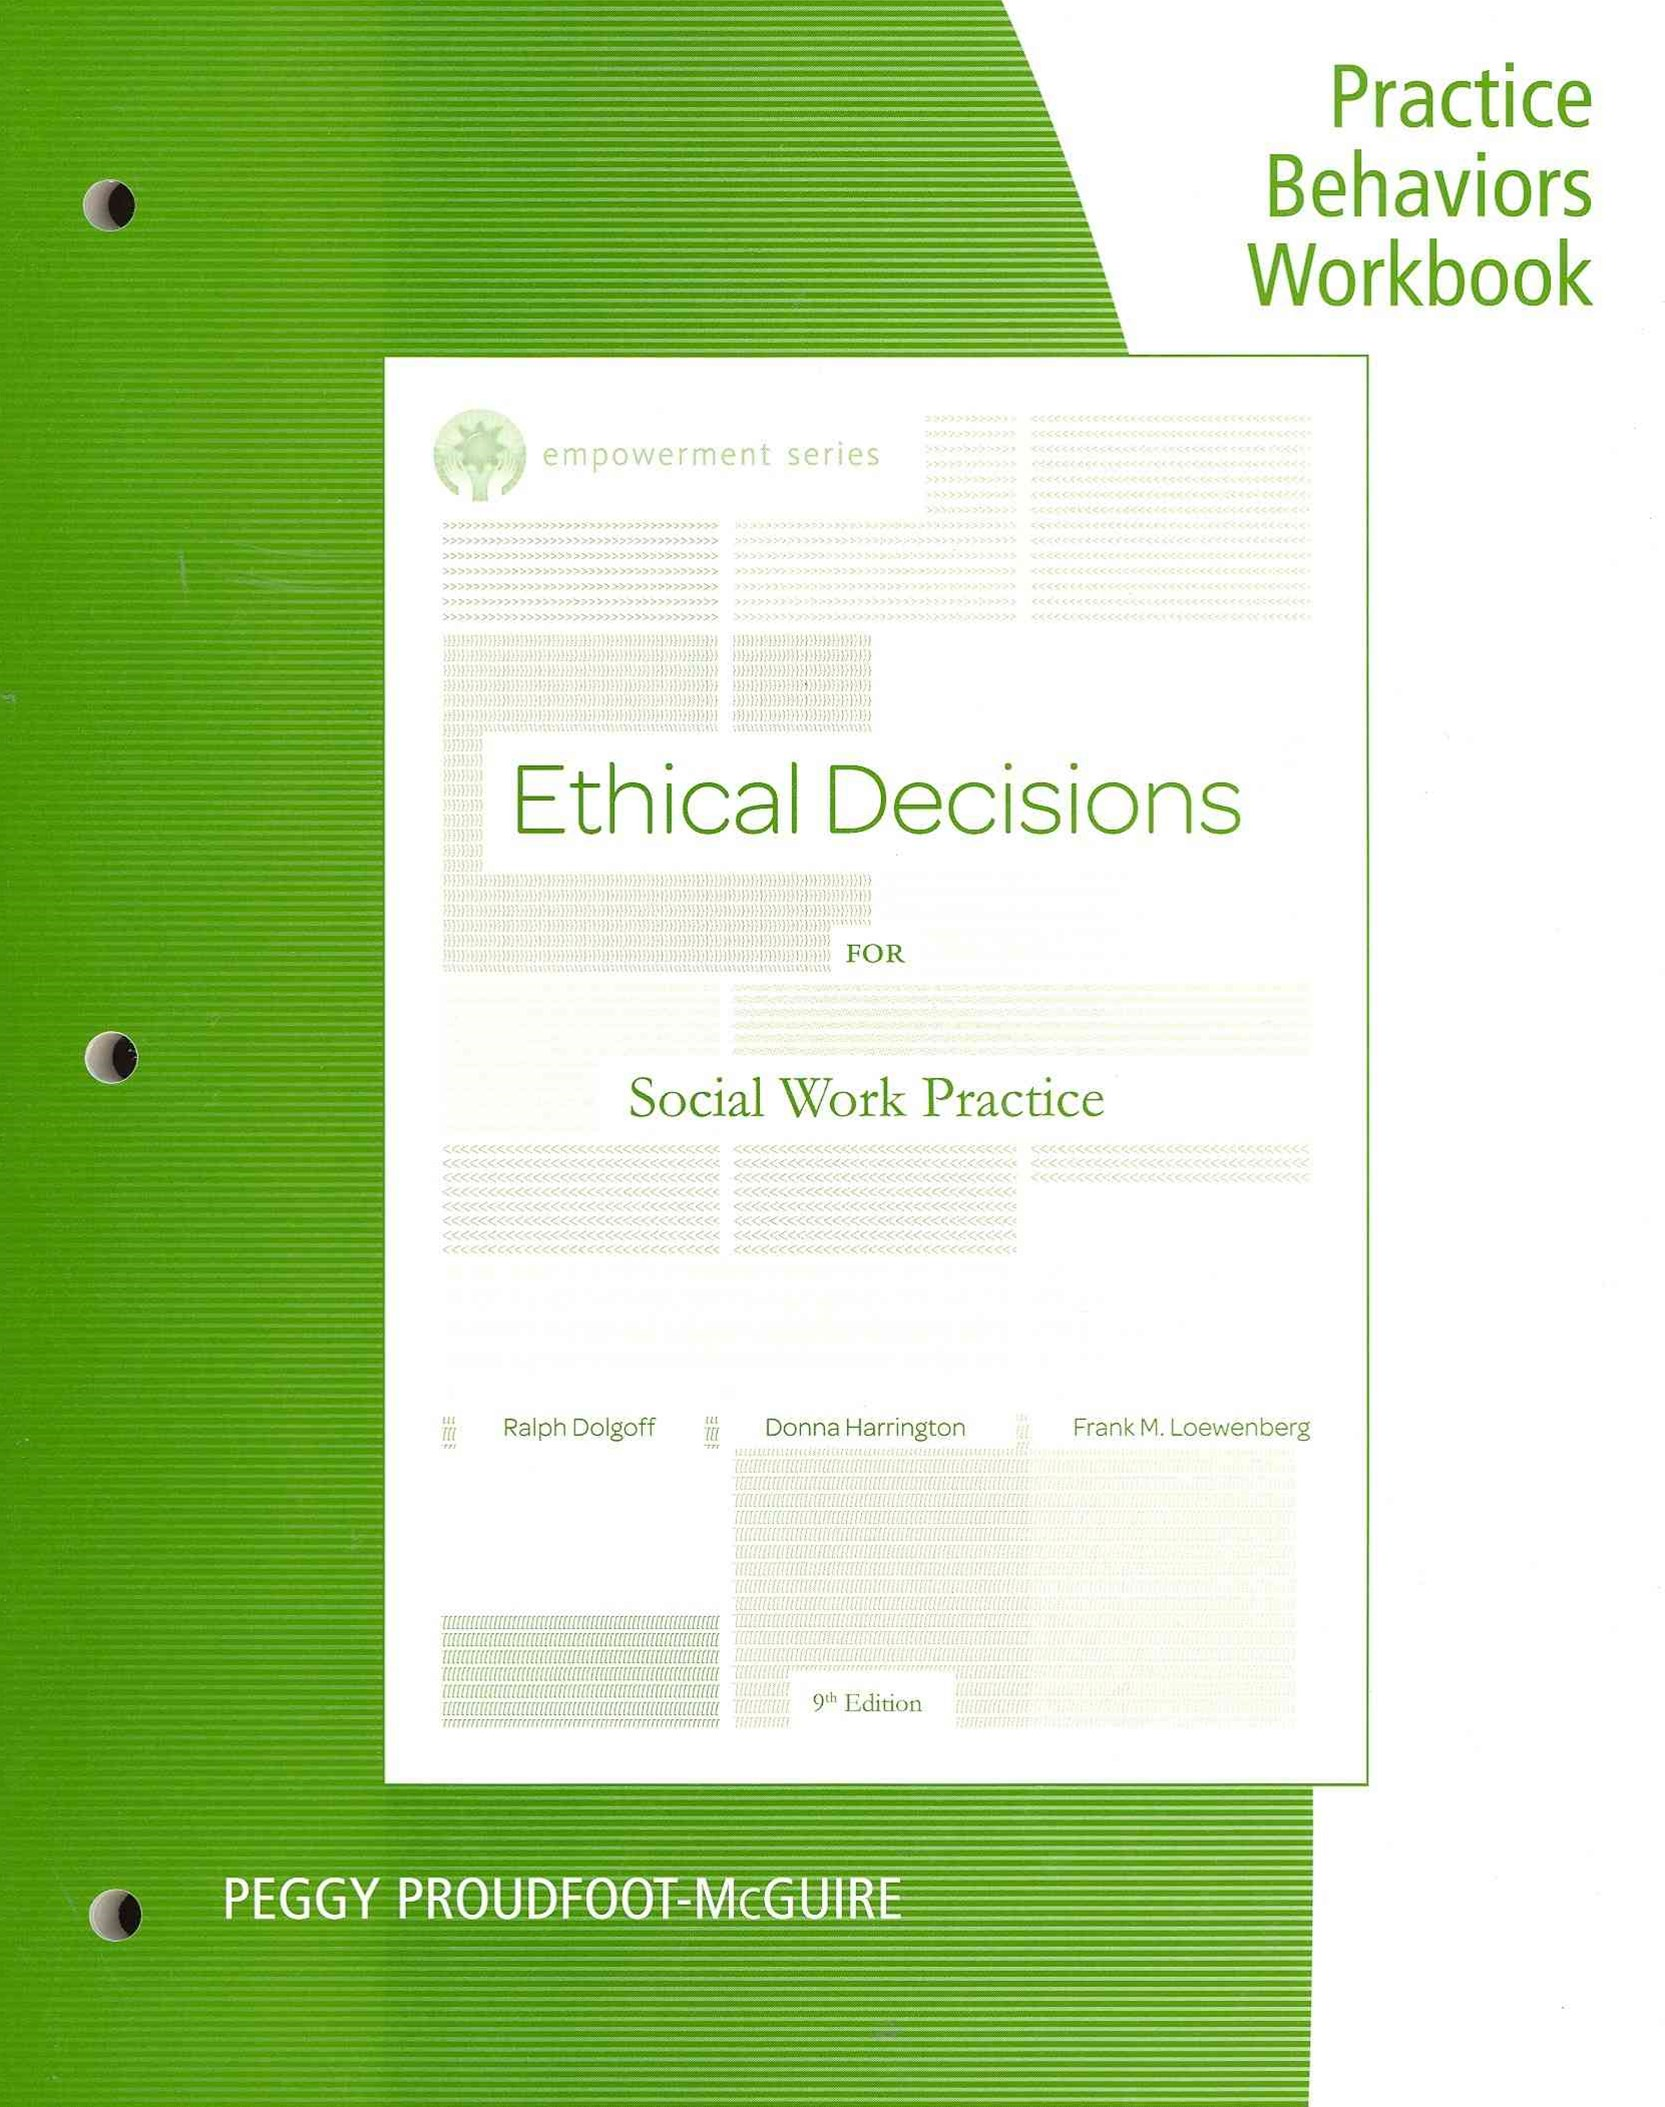 Practice Behaviors Workbook for Dolgoff/Harrington/Loewenberg's  Brooks/Cole Empowerment Series: Ethical Decisions for Social Work Practice, 9th